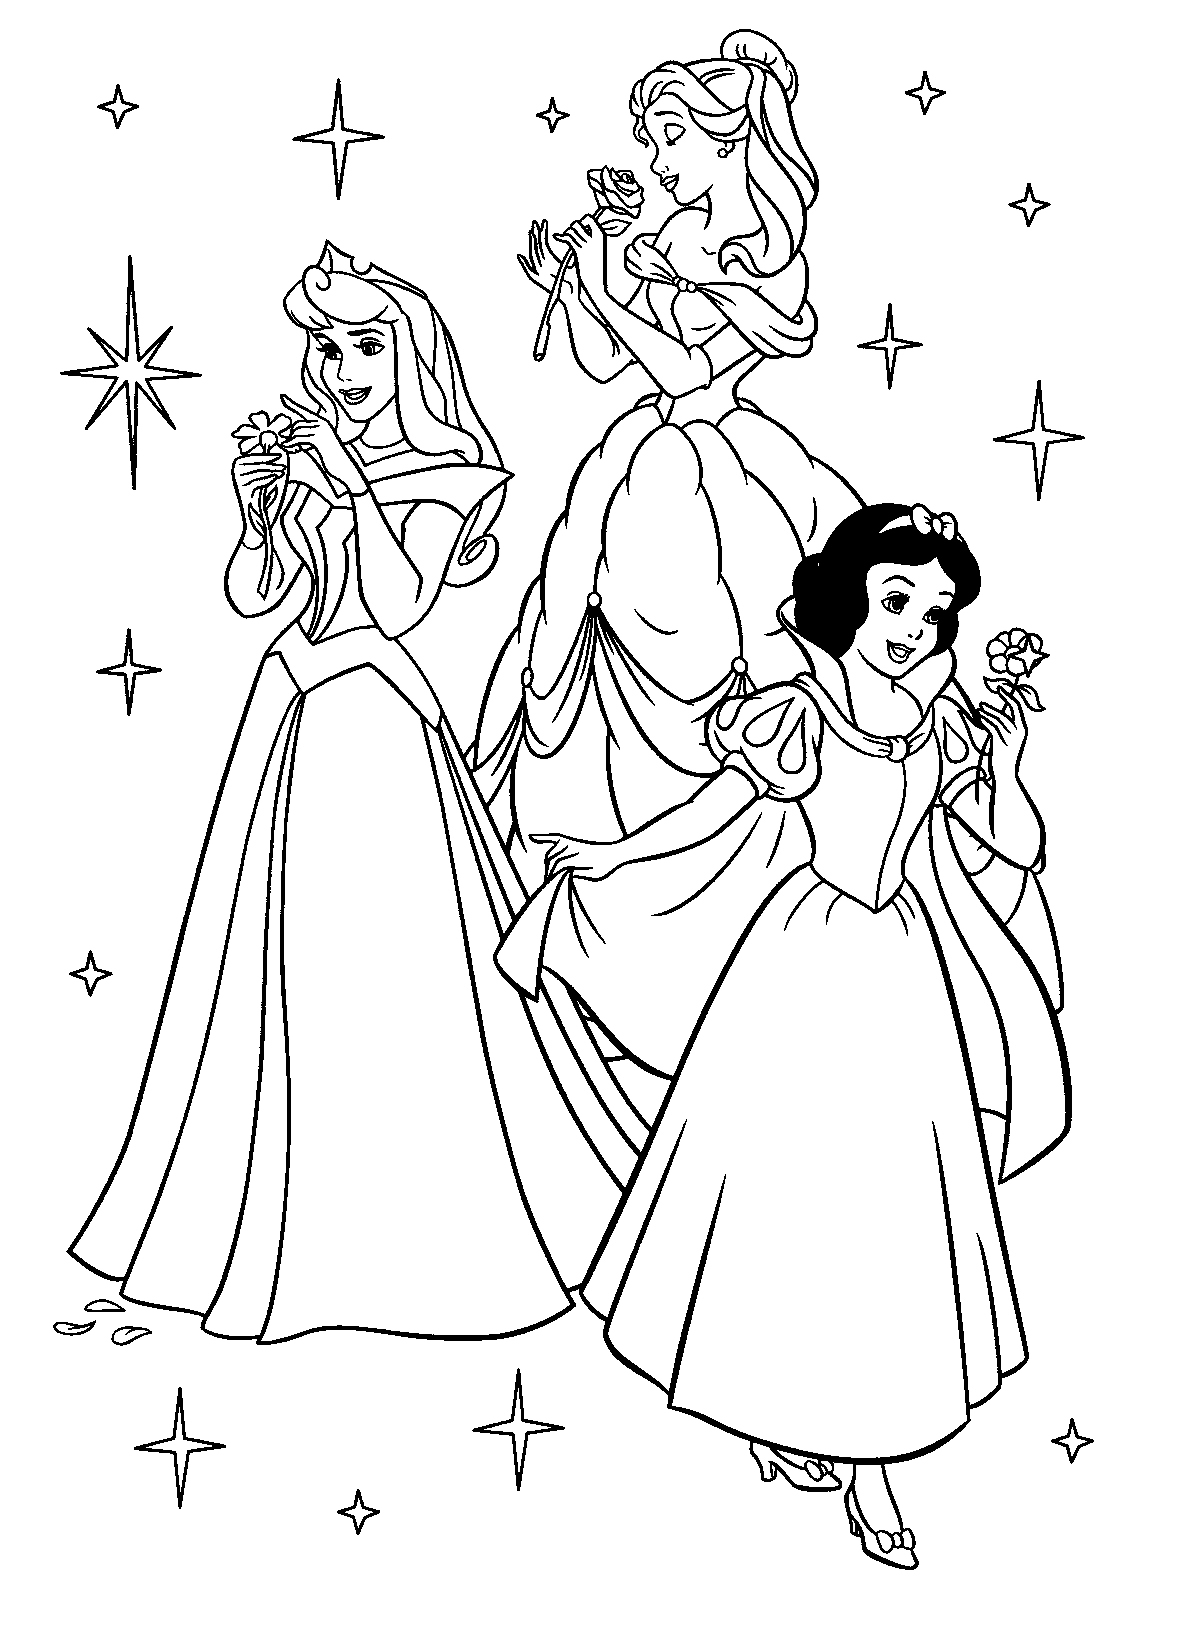 Coloring Pages Disney Color Pages To Print 1000 images about disney coloring pages on pinterest and frozen pages